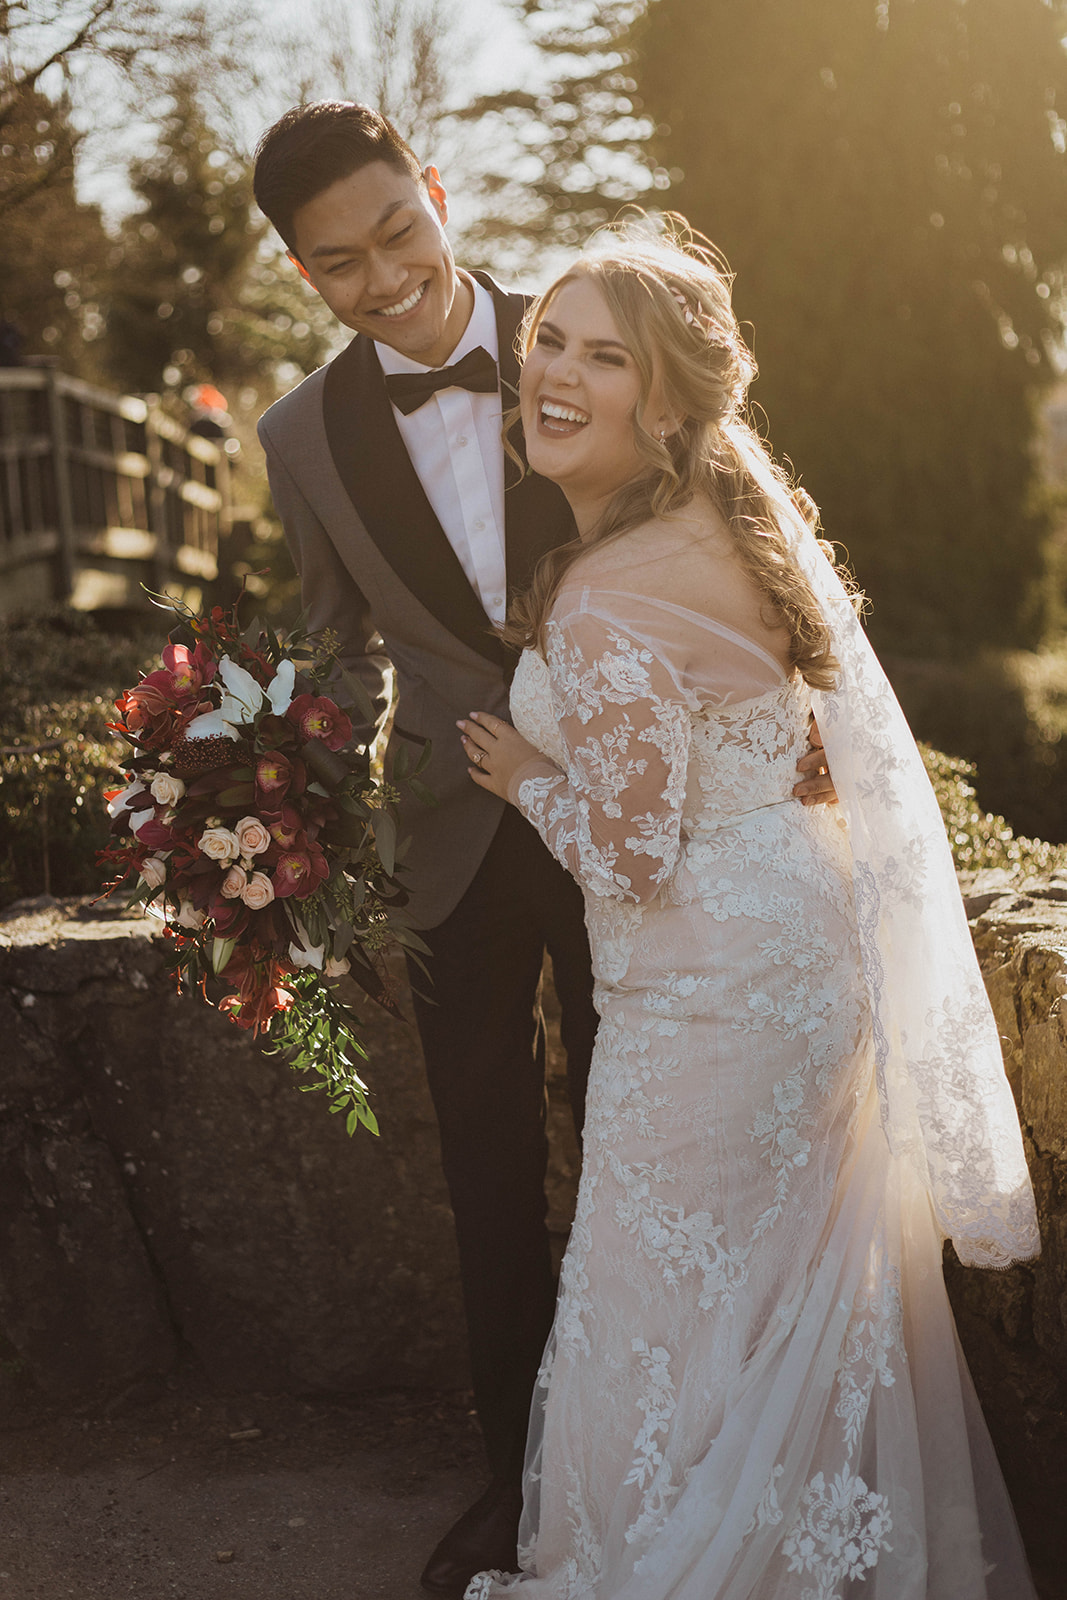 Newlyweds laughing as they take photos after ceremony in Vancouver by Kacie McColm